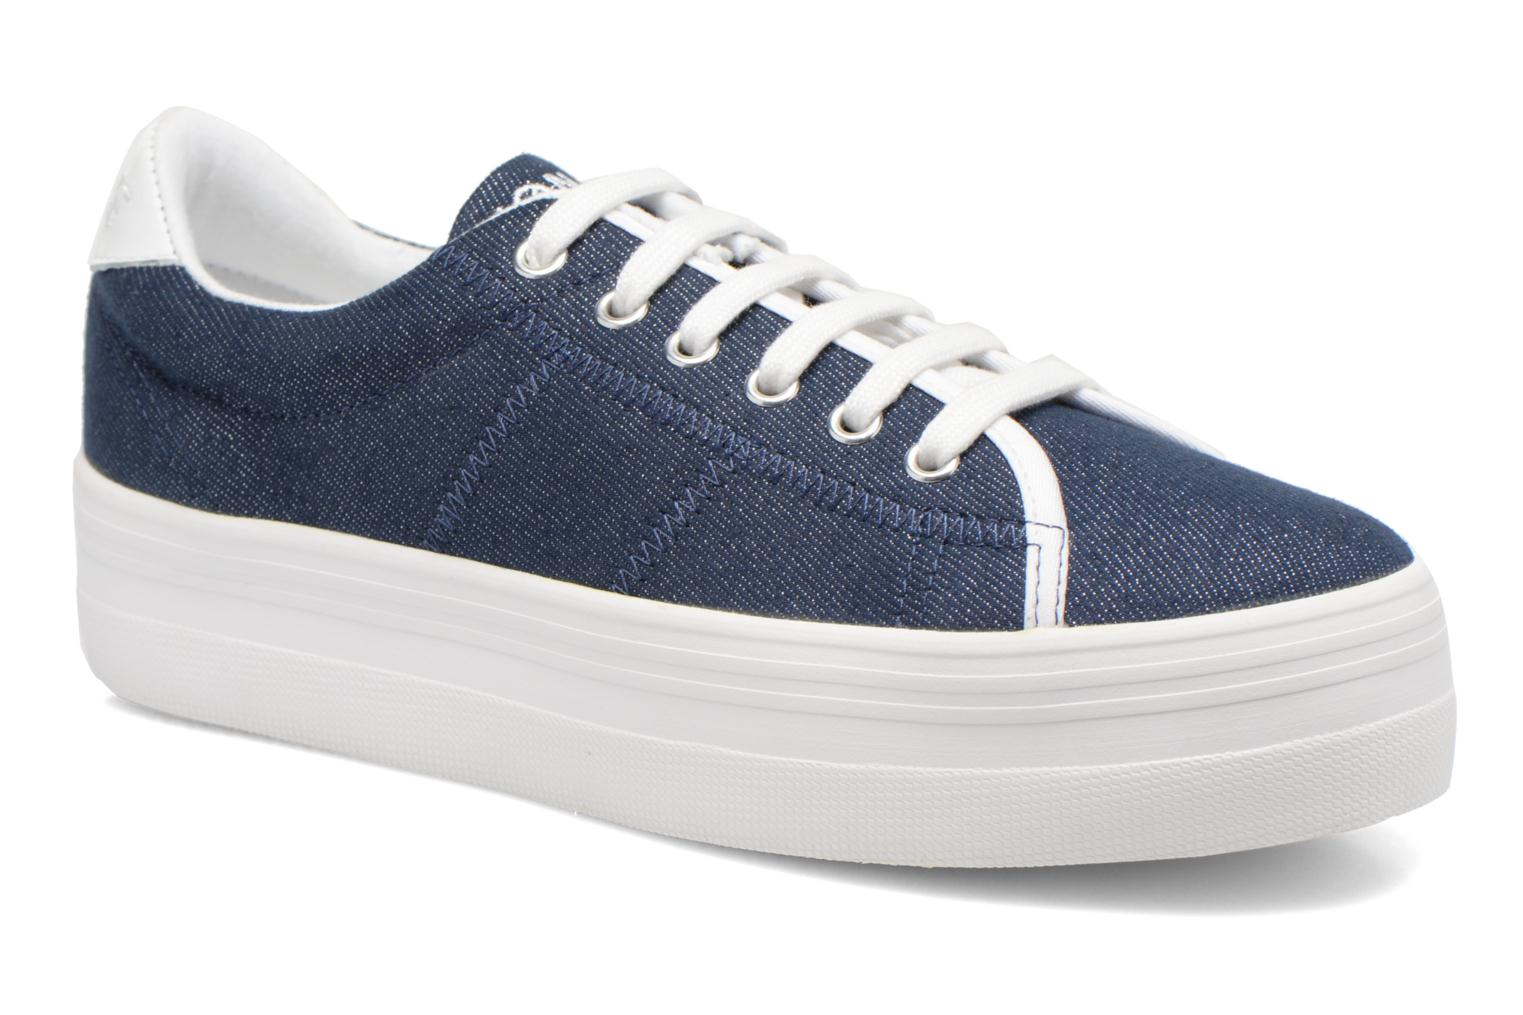 Plato Sneaker Strass Navy Fox White